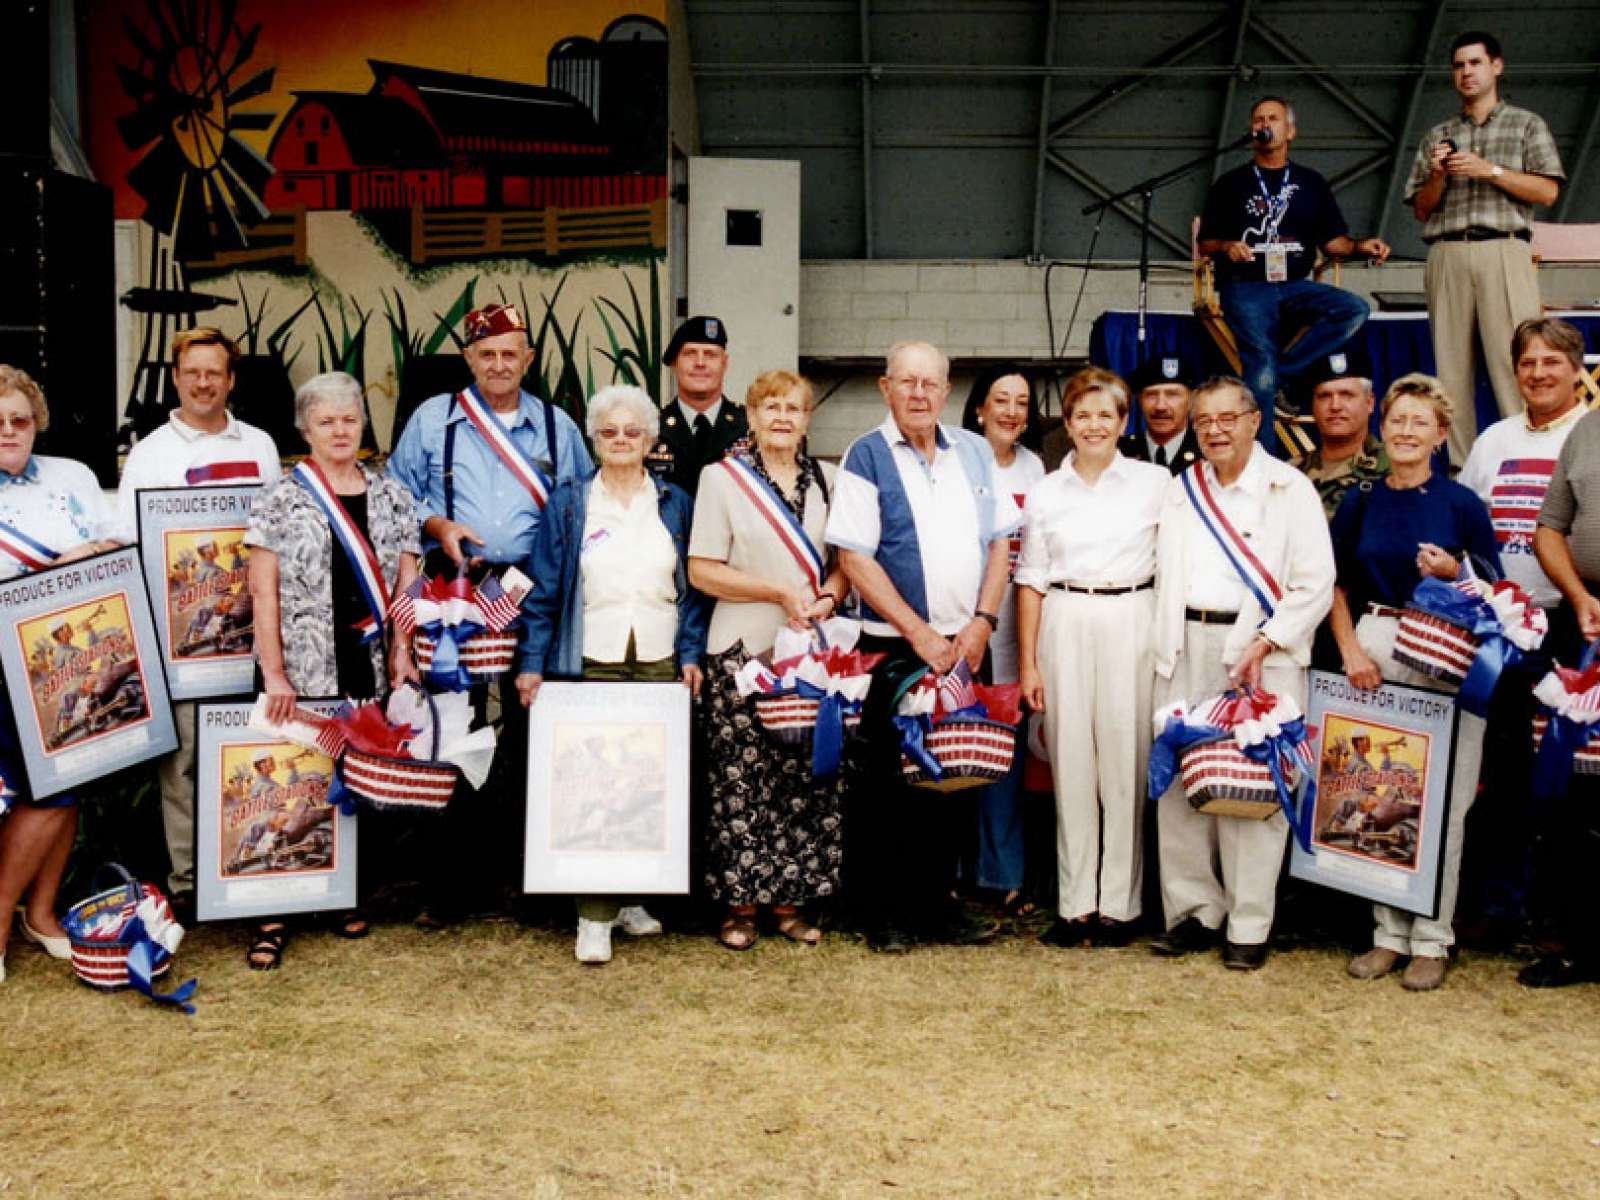 Produce for Victory, South Dakota State Fair